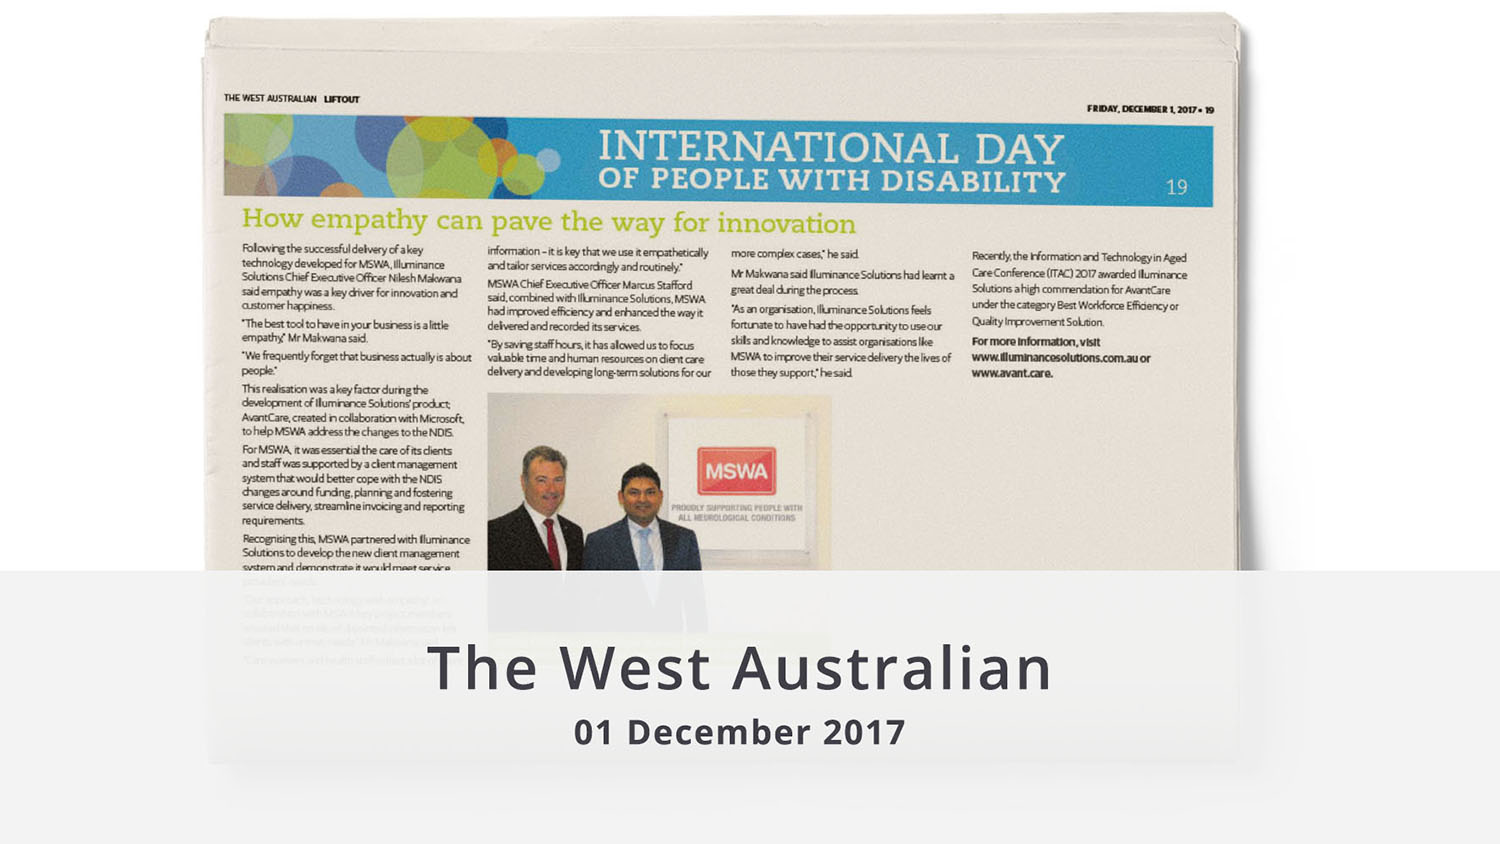 MSWA article The West Australian illuminance Solutions featured image